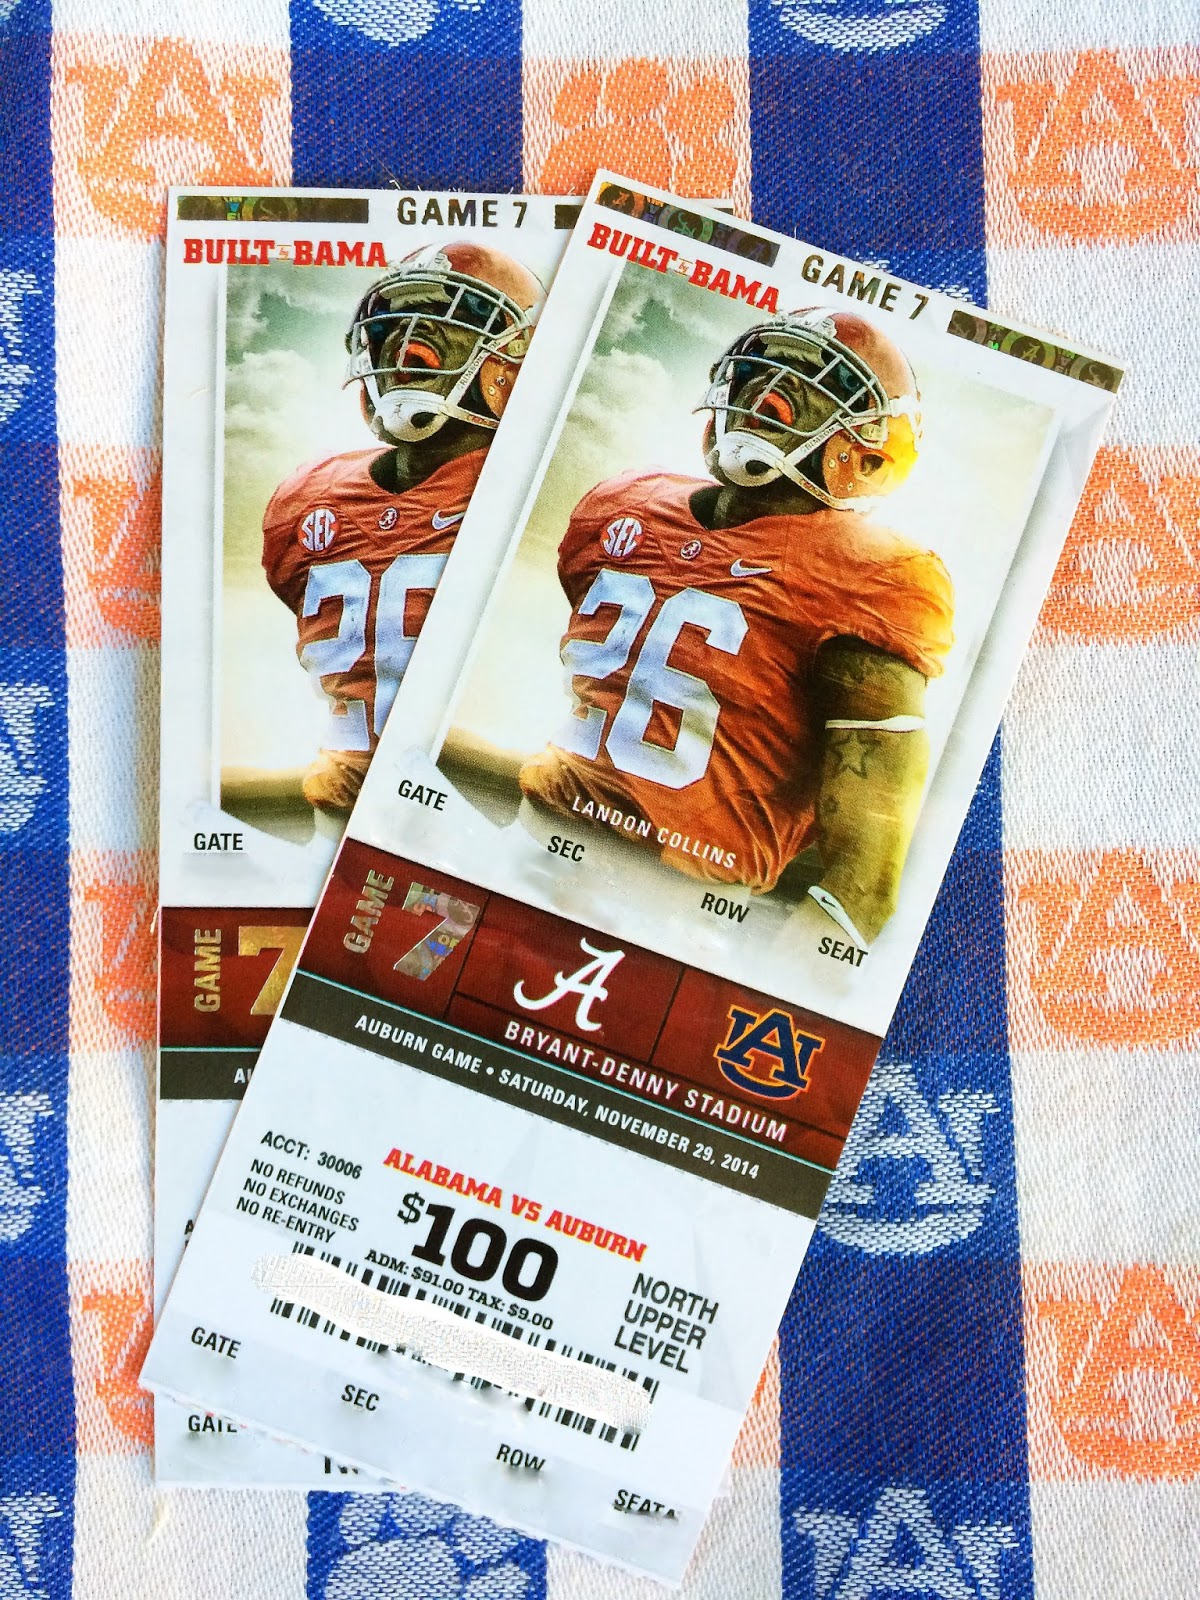 iron bowl 2014 tickets